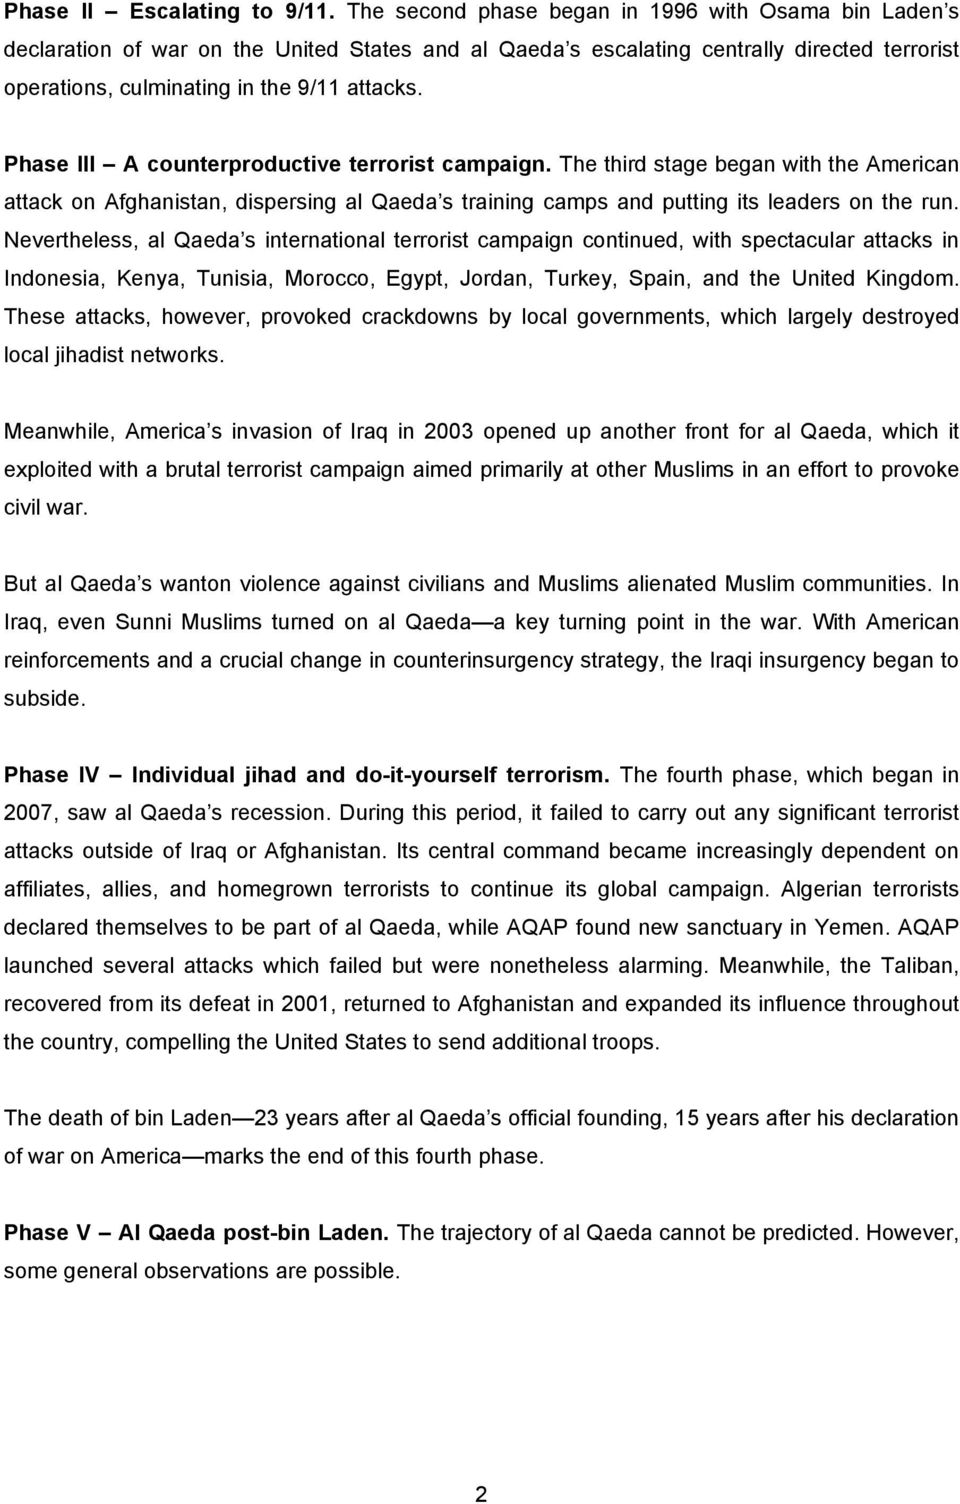 Phase III A counterproductive terrorist campaign. The third stage began with the American attack on Afghanistan, dispersing al Qaeda s training camps and putting its leaders on the run.